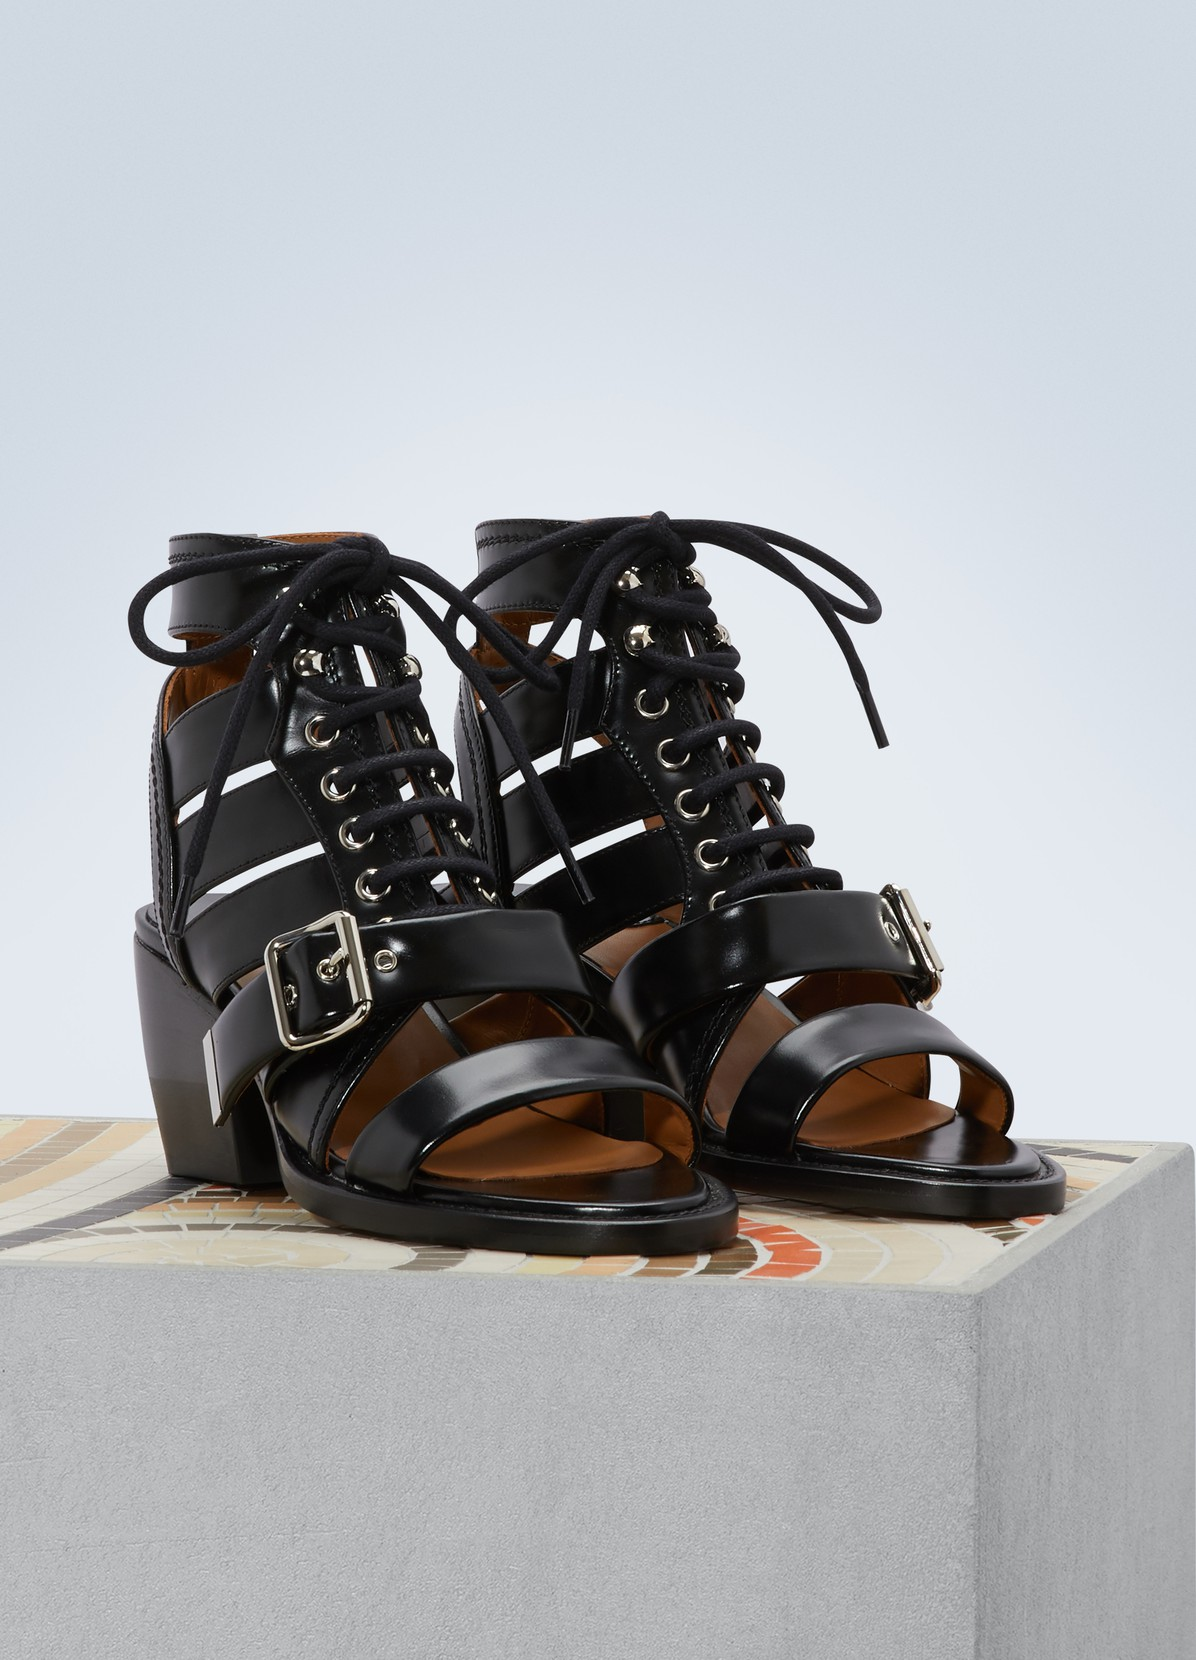 3. The 9-to-9 Hero. - These Chloé Runway shoes are cool and comfy from 9-to-9.